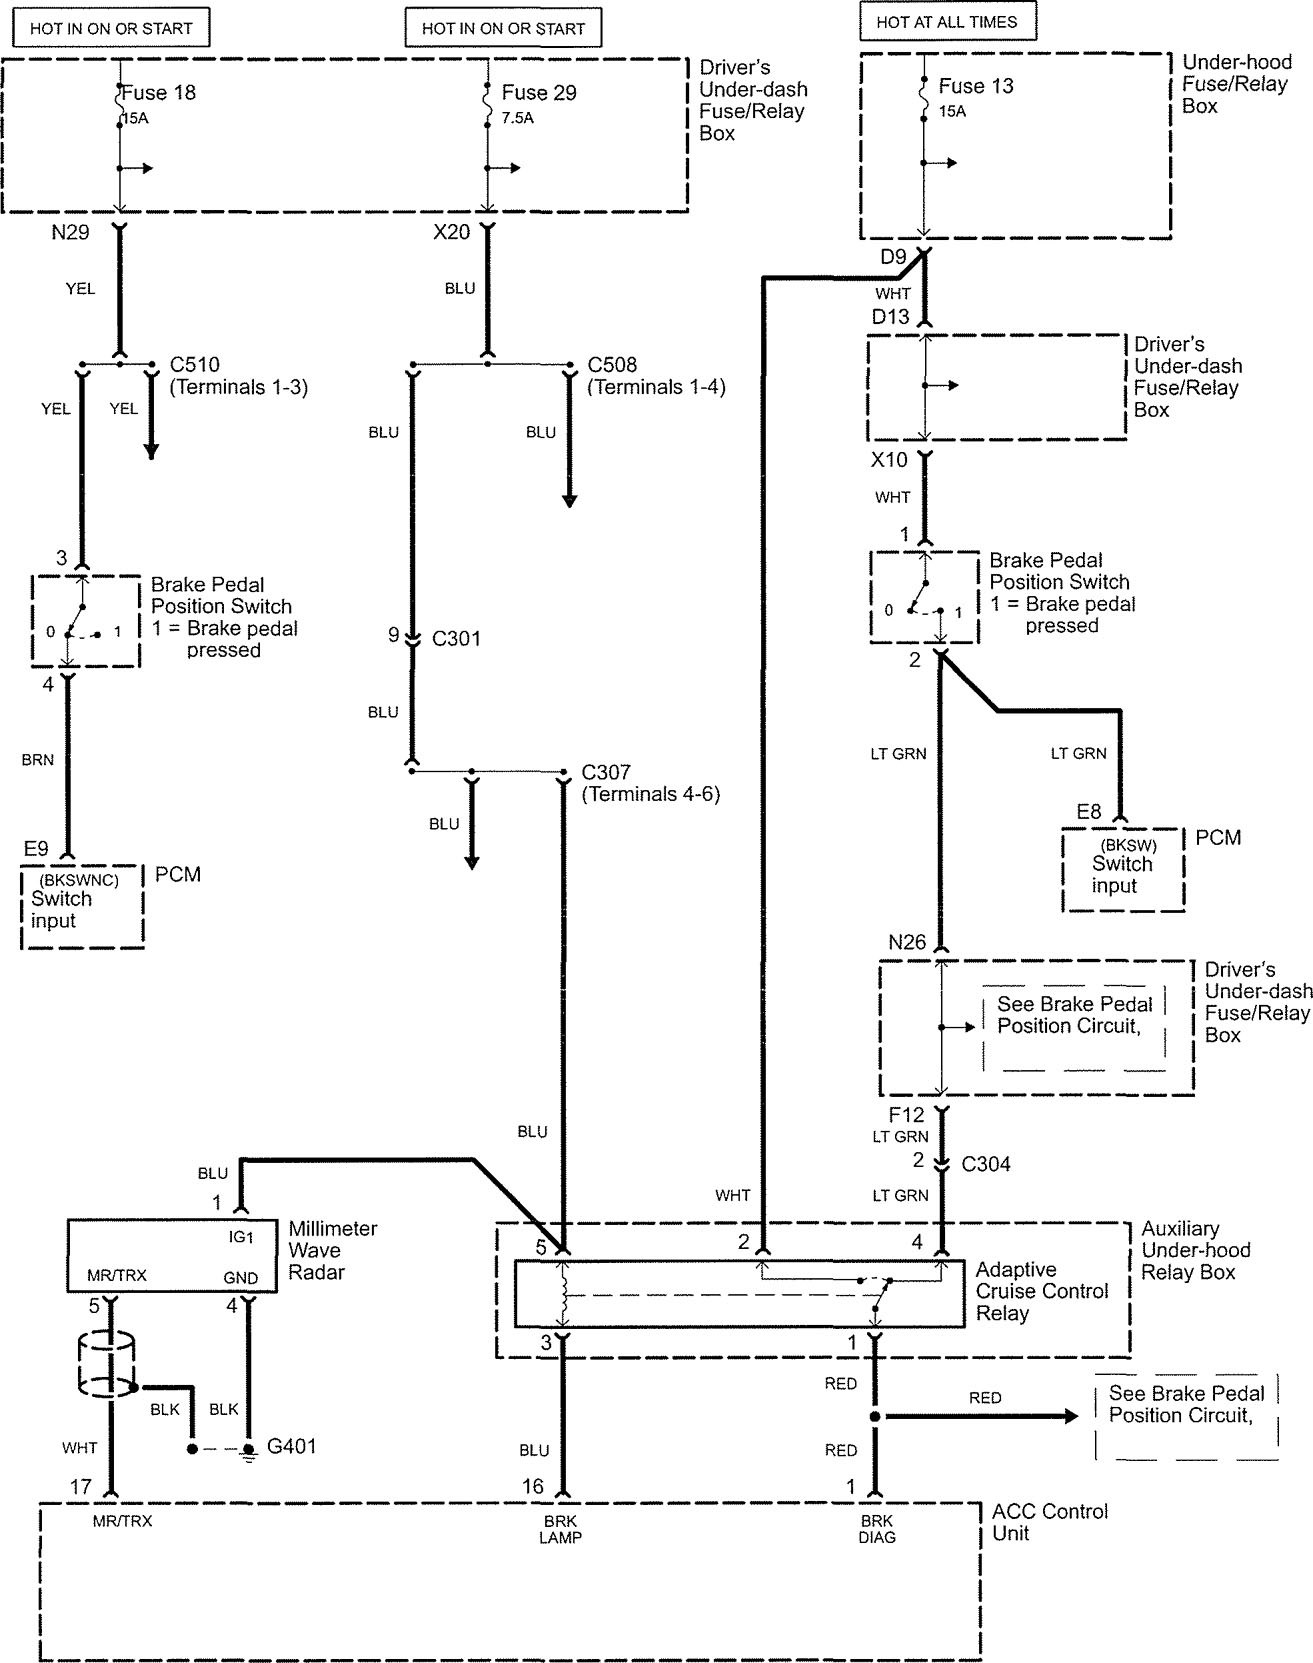 1978 Camaro Wiring Diagram Just Another Blog 70 Schematic 6 Cylinder Data Schema Rh 26 Danielmeidl De